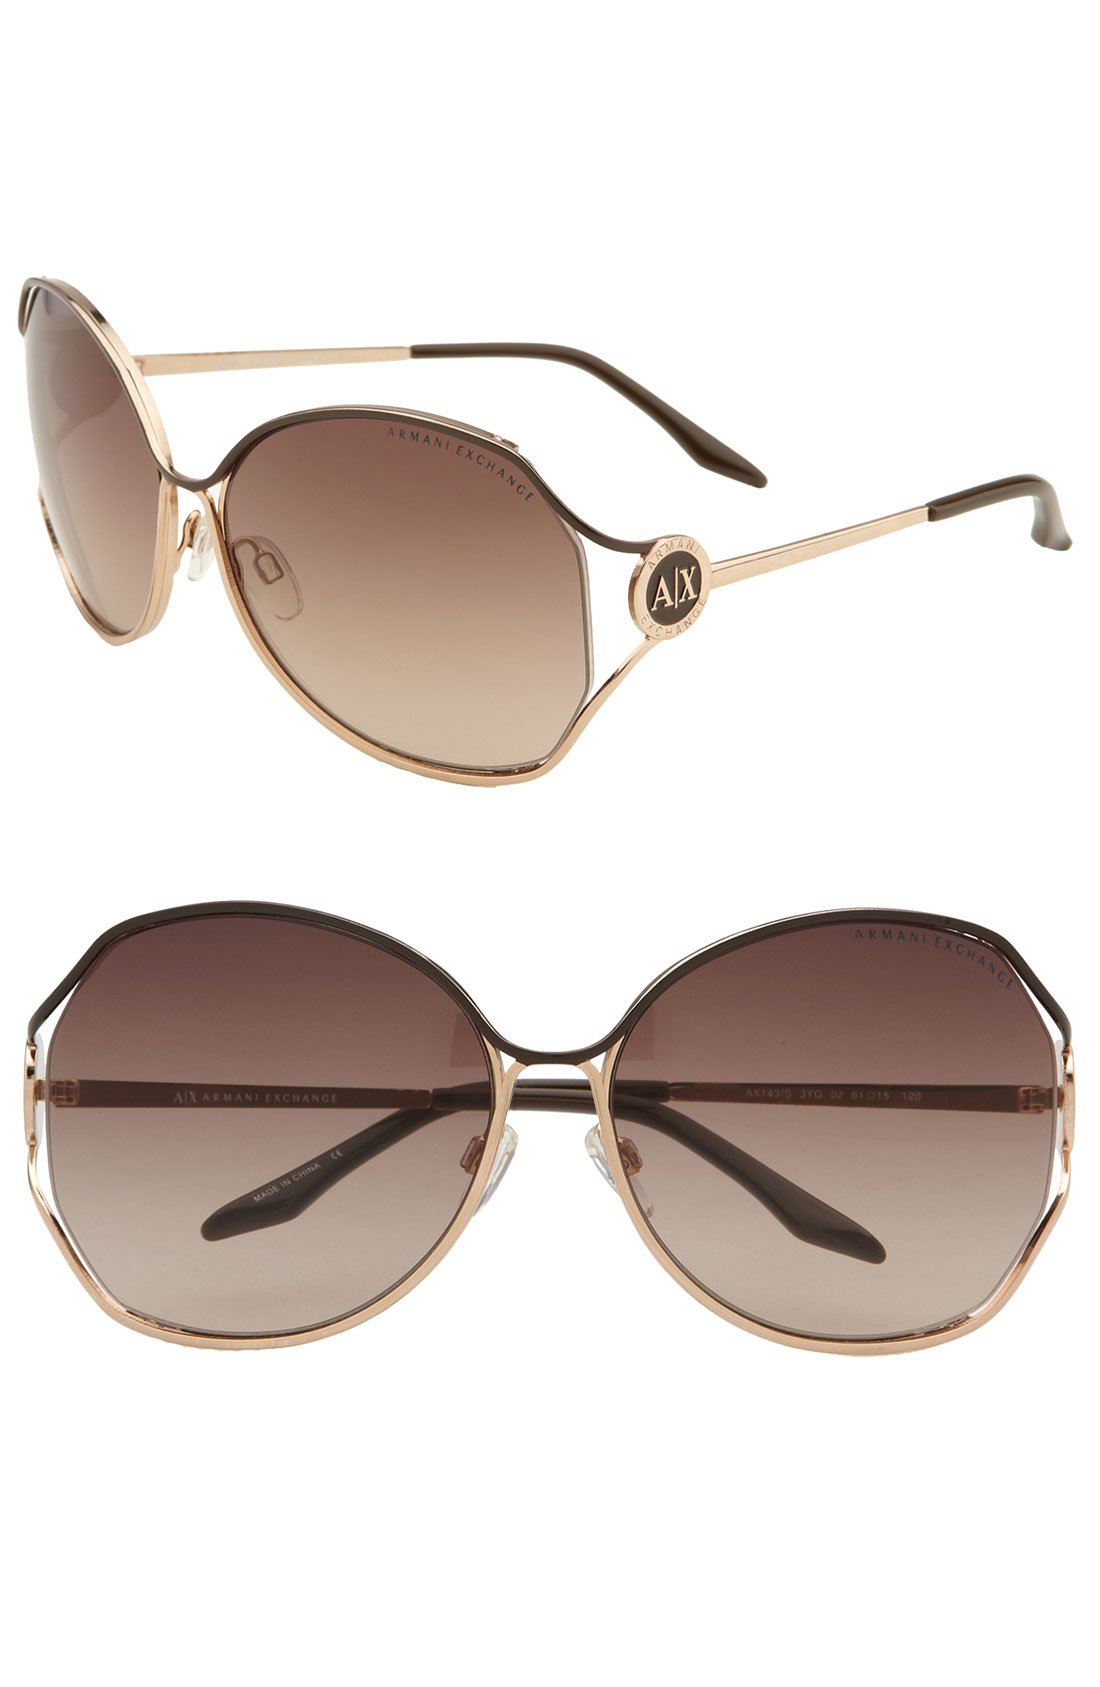 e9a1f9121a0 Armani Exchange Ax 150 S Aviator Sunglasses